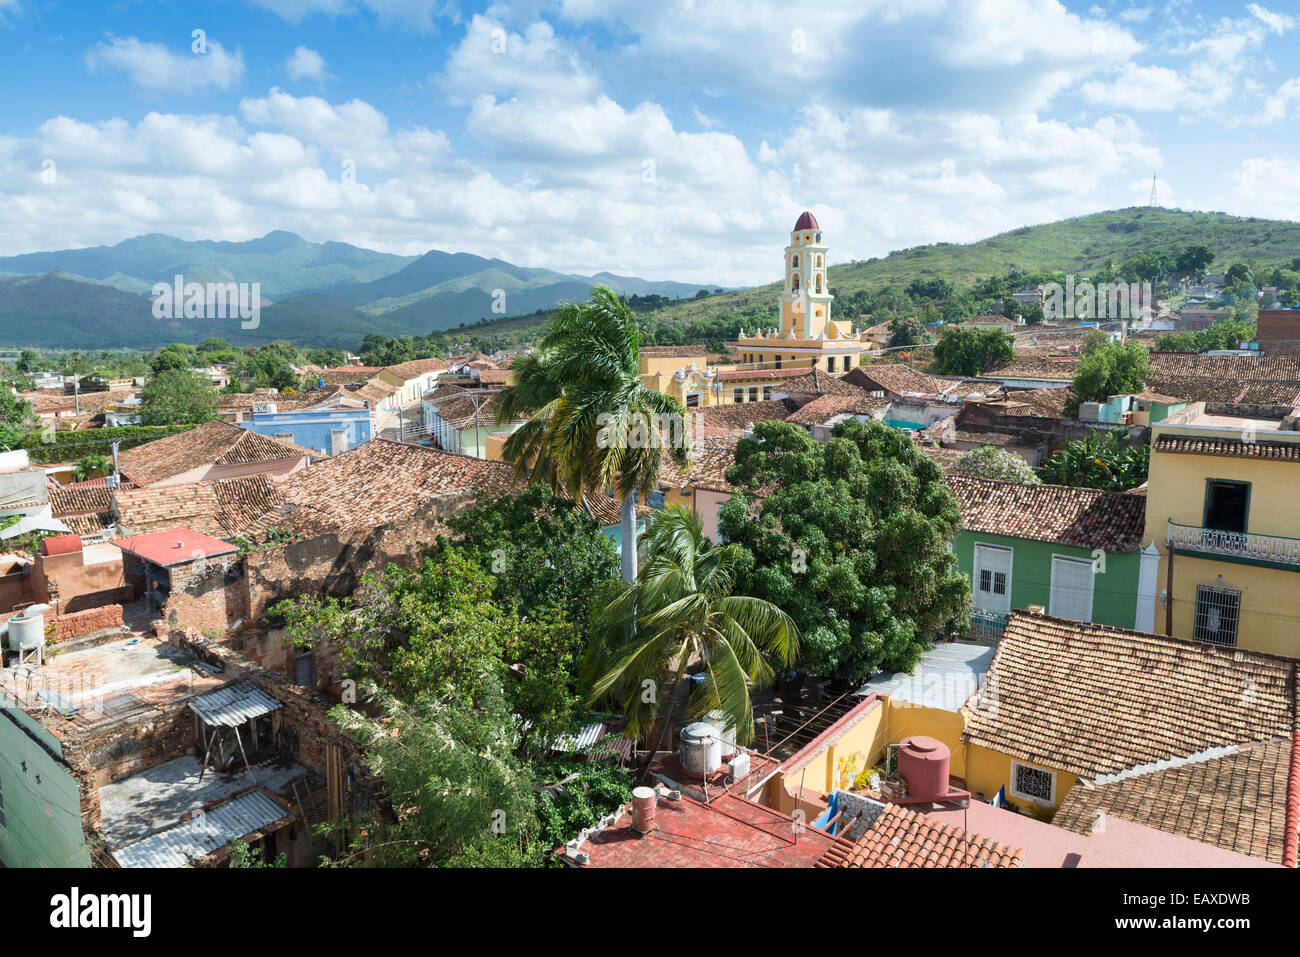 TRINIDAD, CUBA - MAY 8, 2014: Old town of Trinidad, Cuba. Trinidad is a historical town listed by UNESCO as World - Stock Image